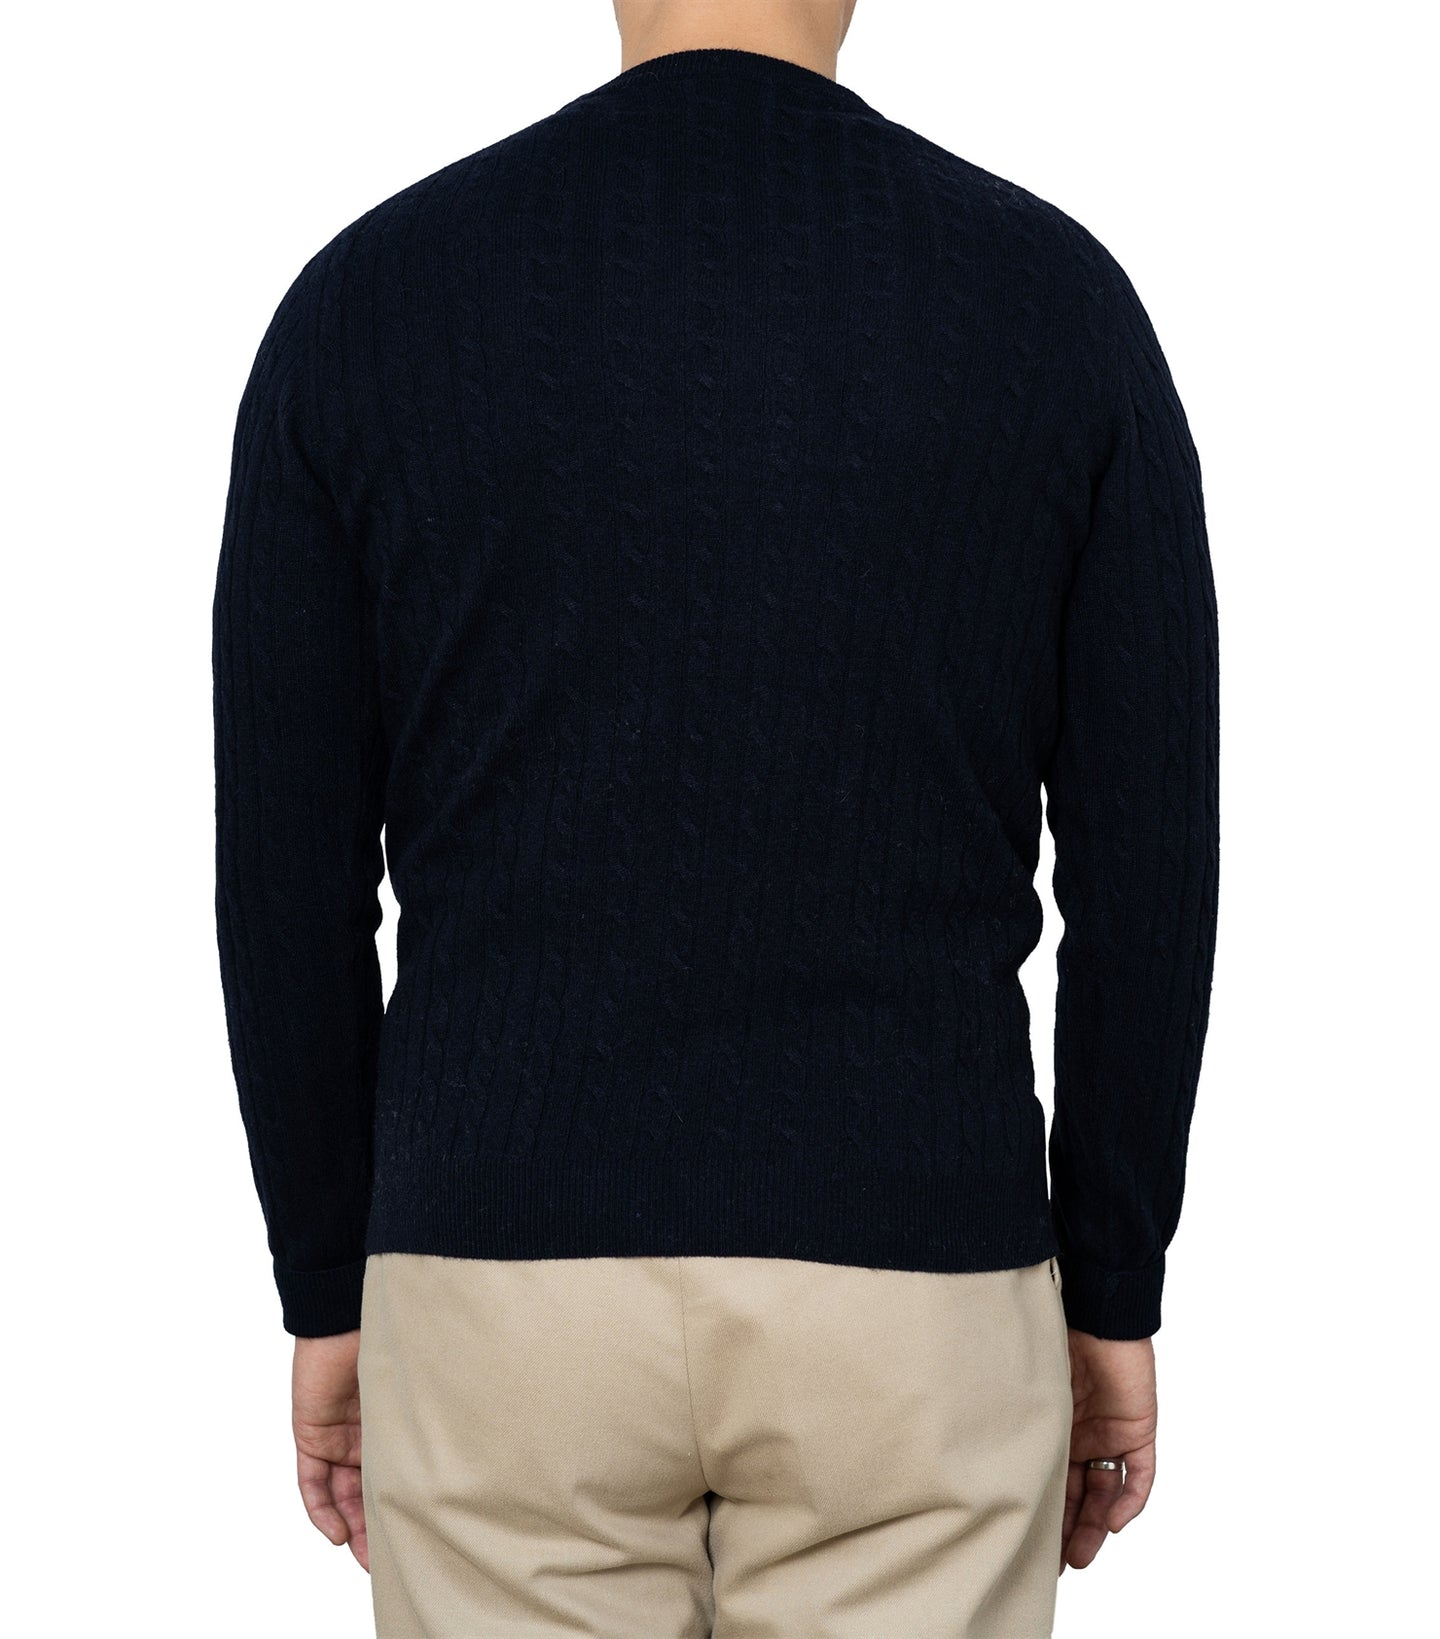 Enar Navy Cable Knit Sweater